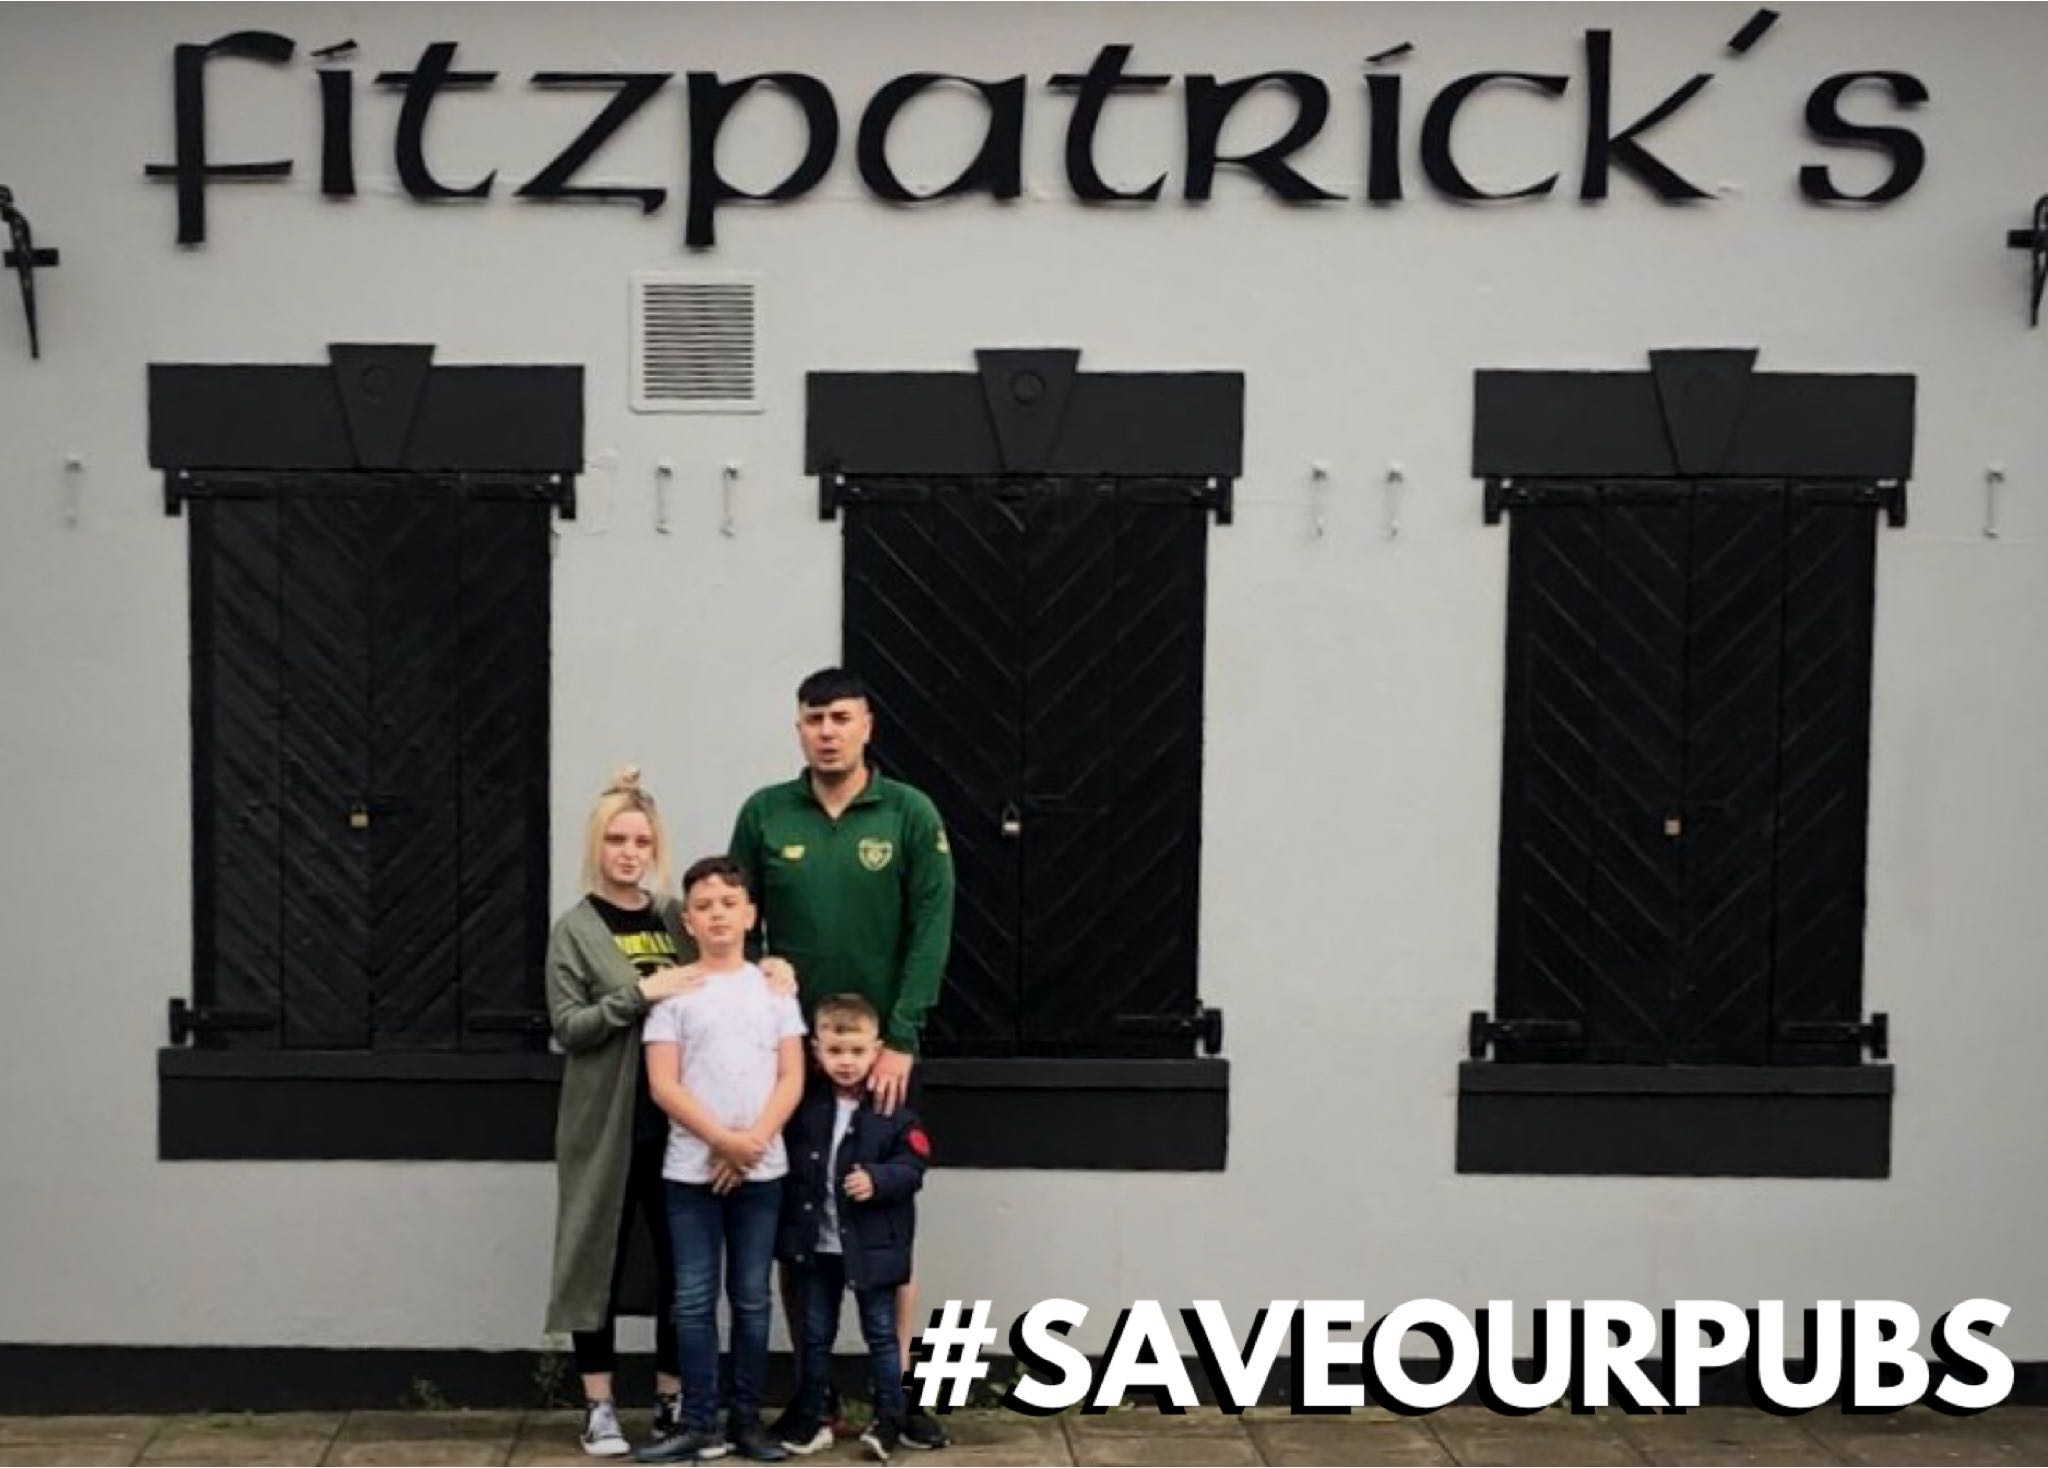 SAVEOURPUBS - Fitzpatricks in Downpatrick